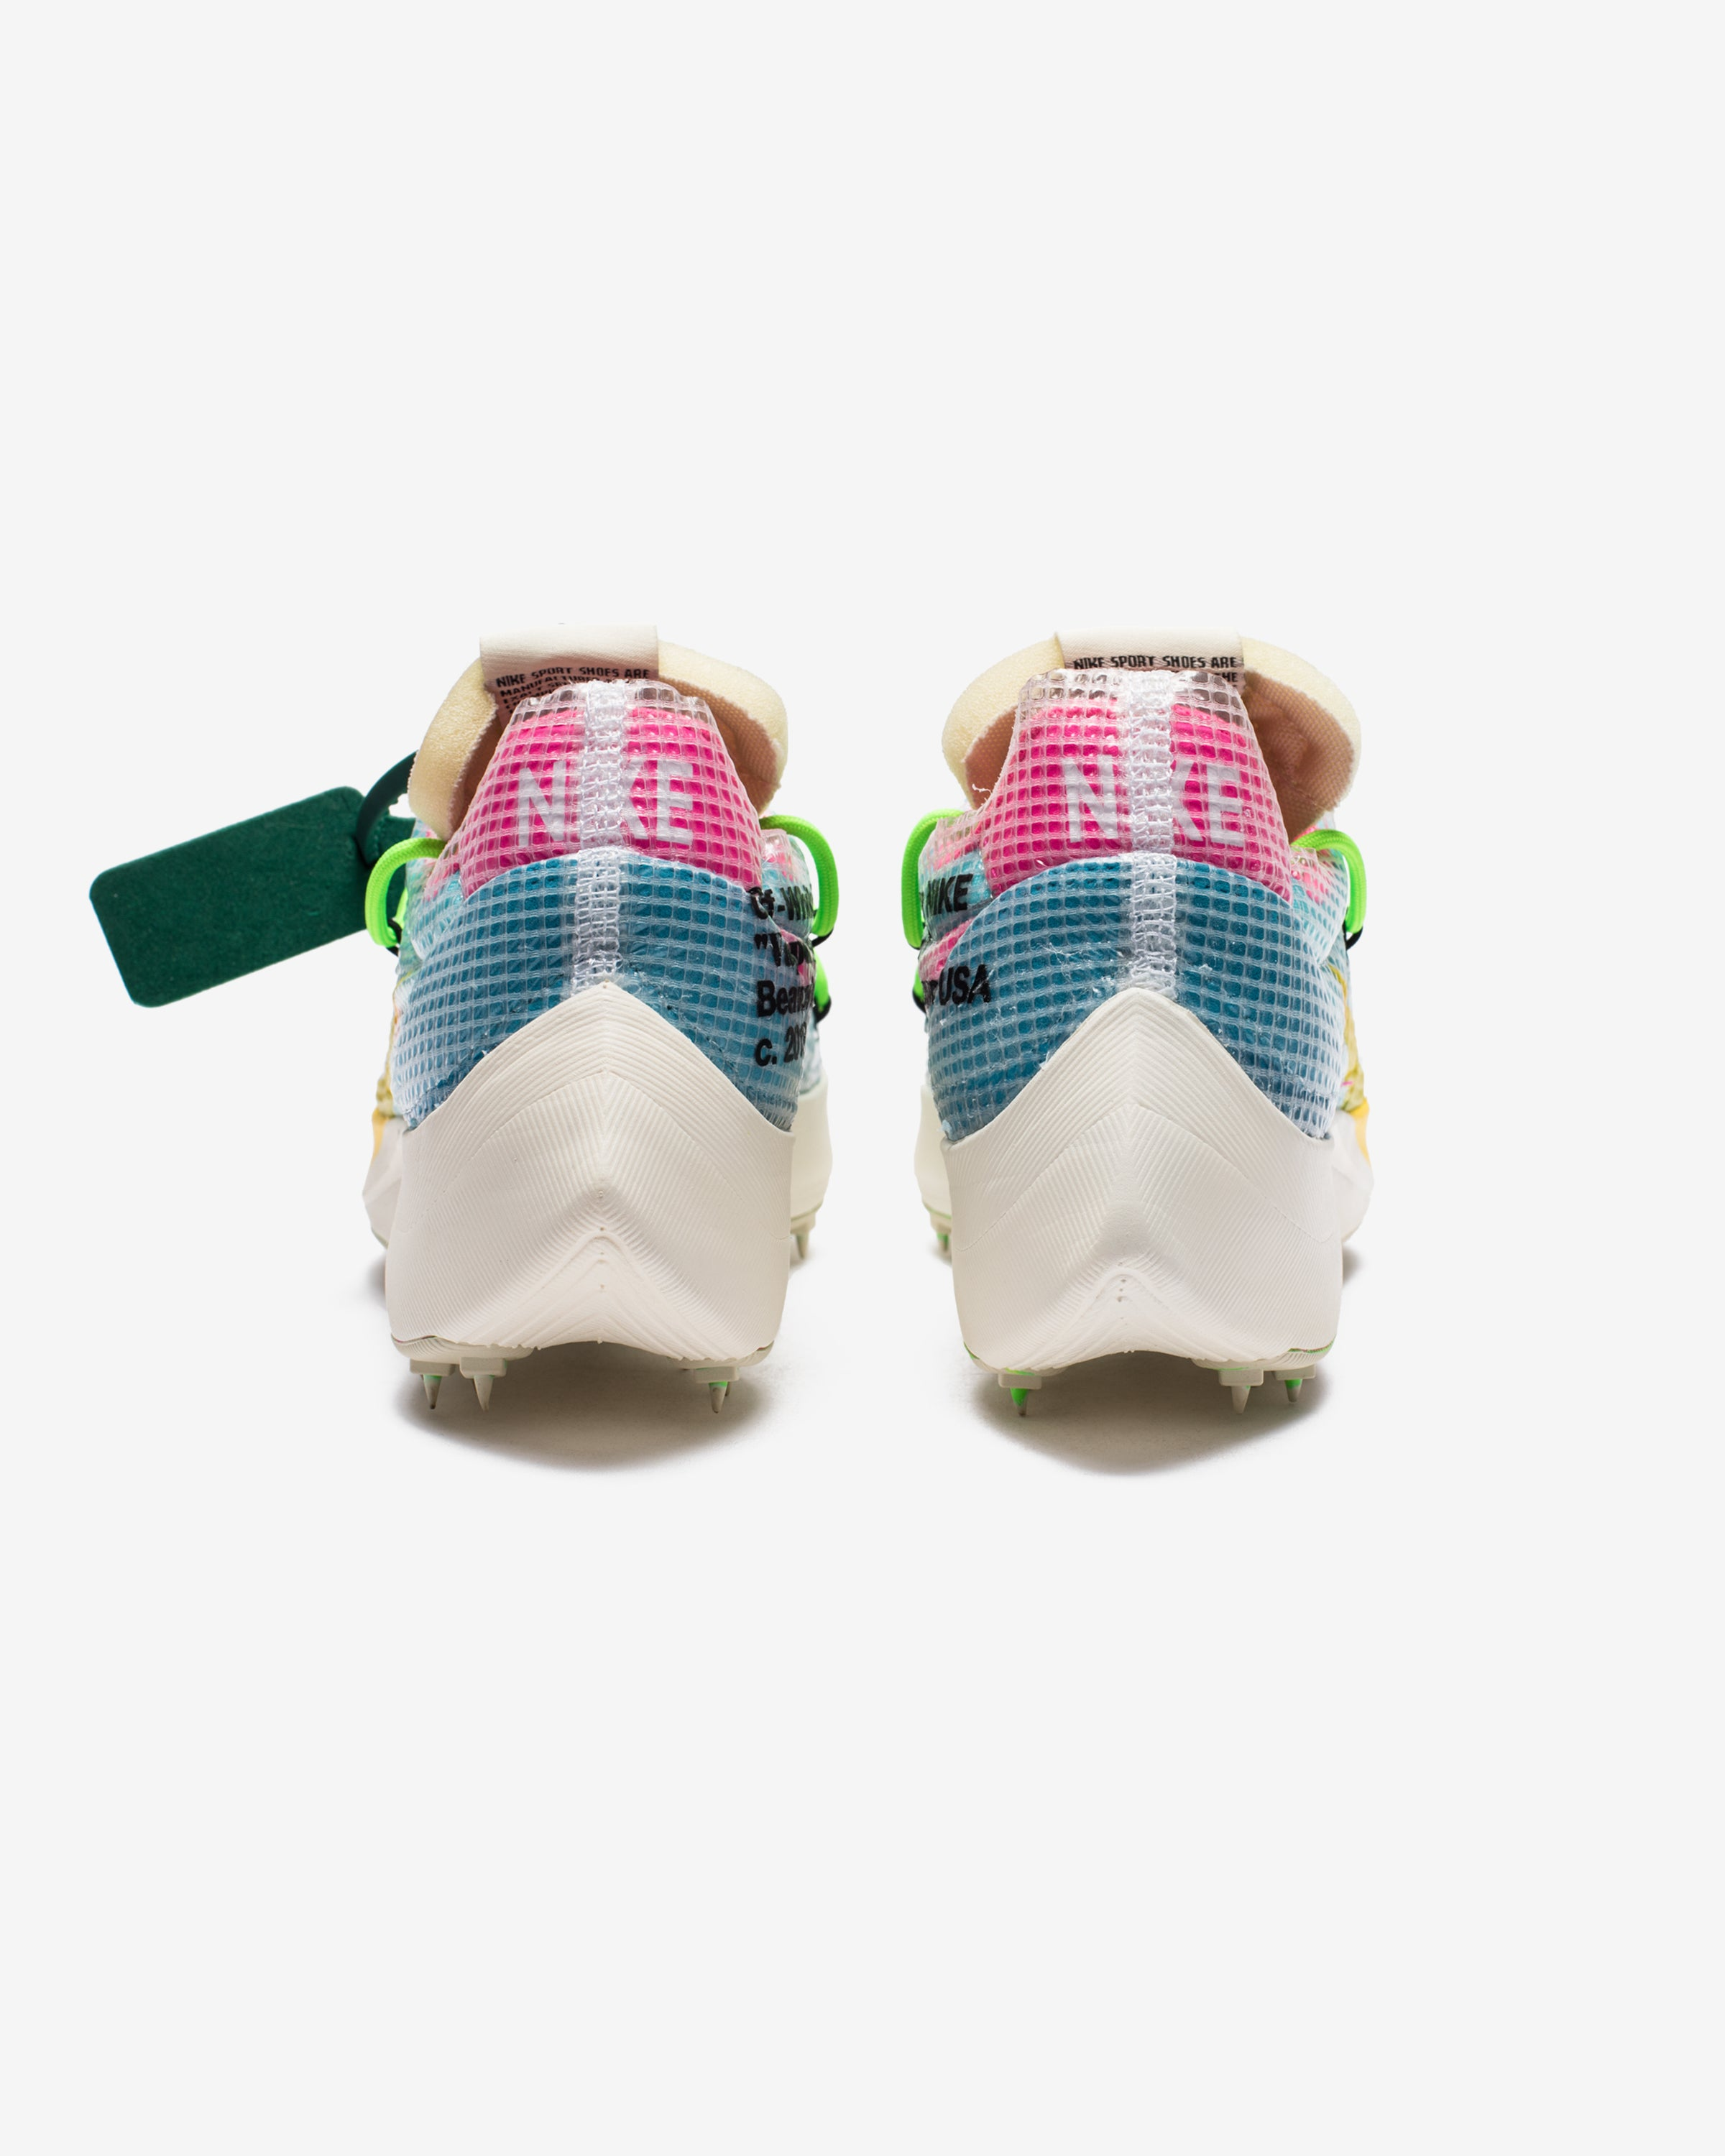 NIKE X OFF-WHITE WOMEN'S VAPOR STREET - POLARIZEDBLUE/TOURYELLOW